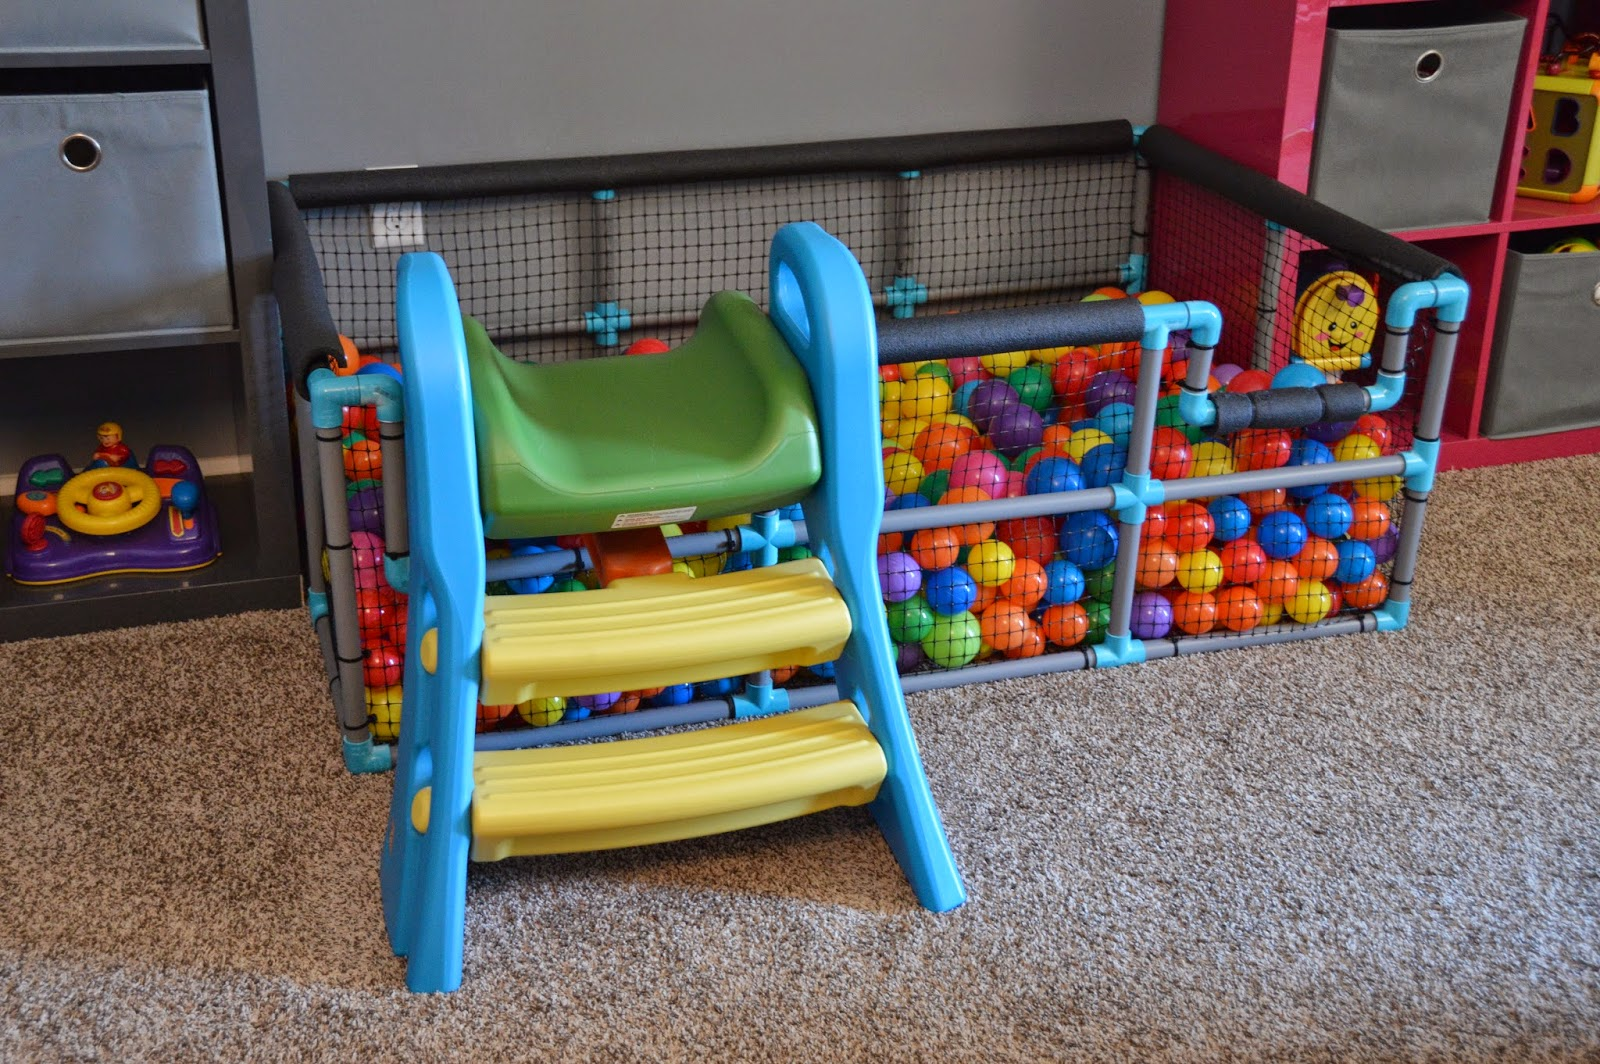 Playroom: The Journey Of Parenthood...: Tour Of Our Home: Playroom